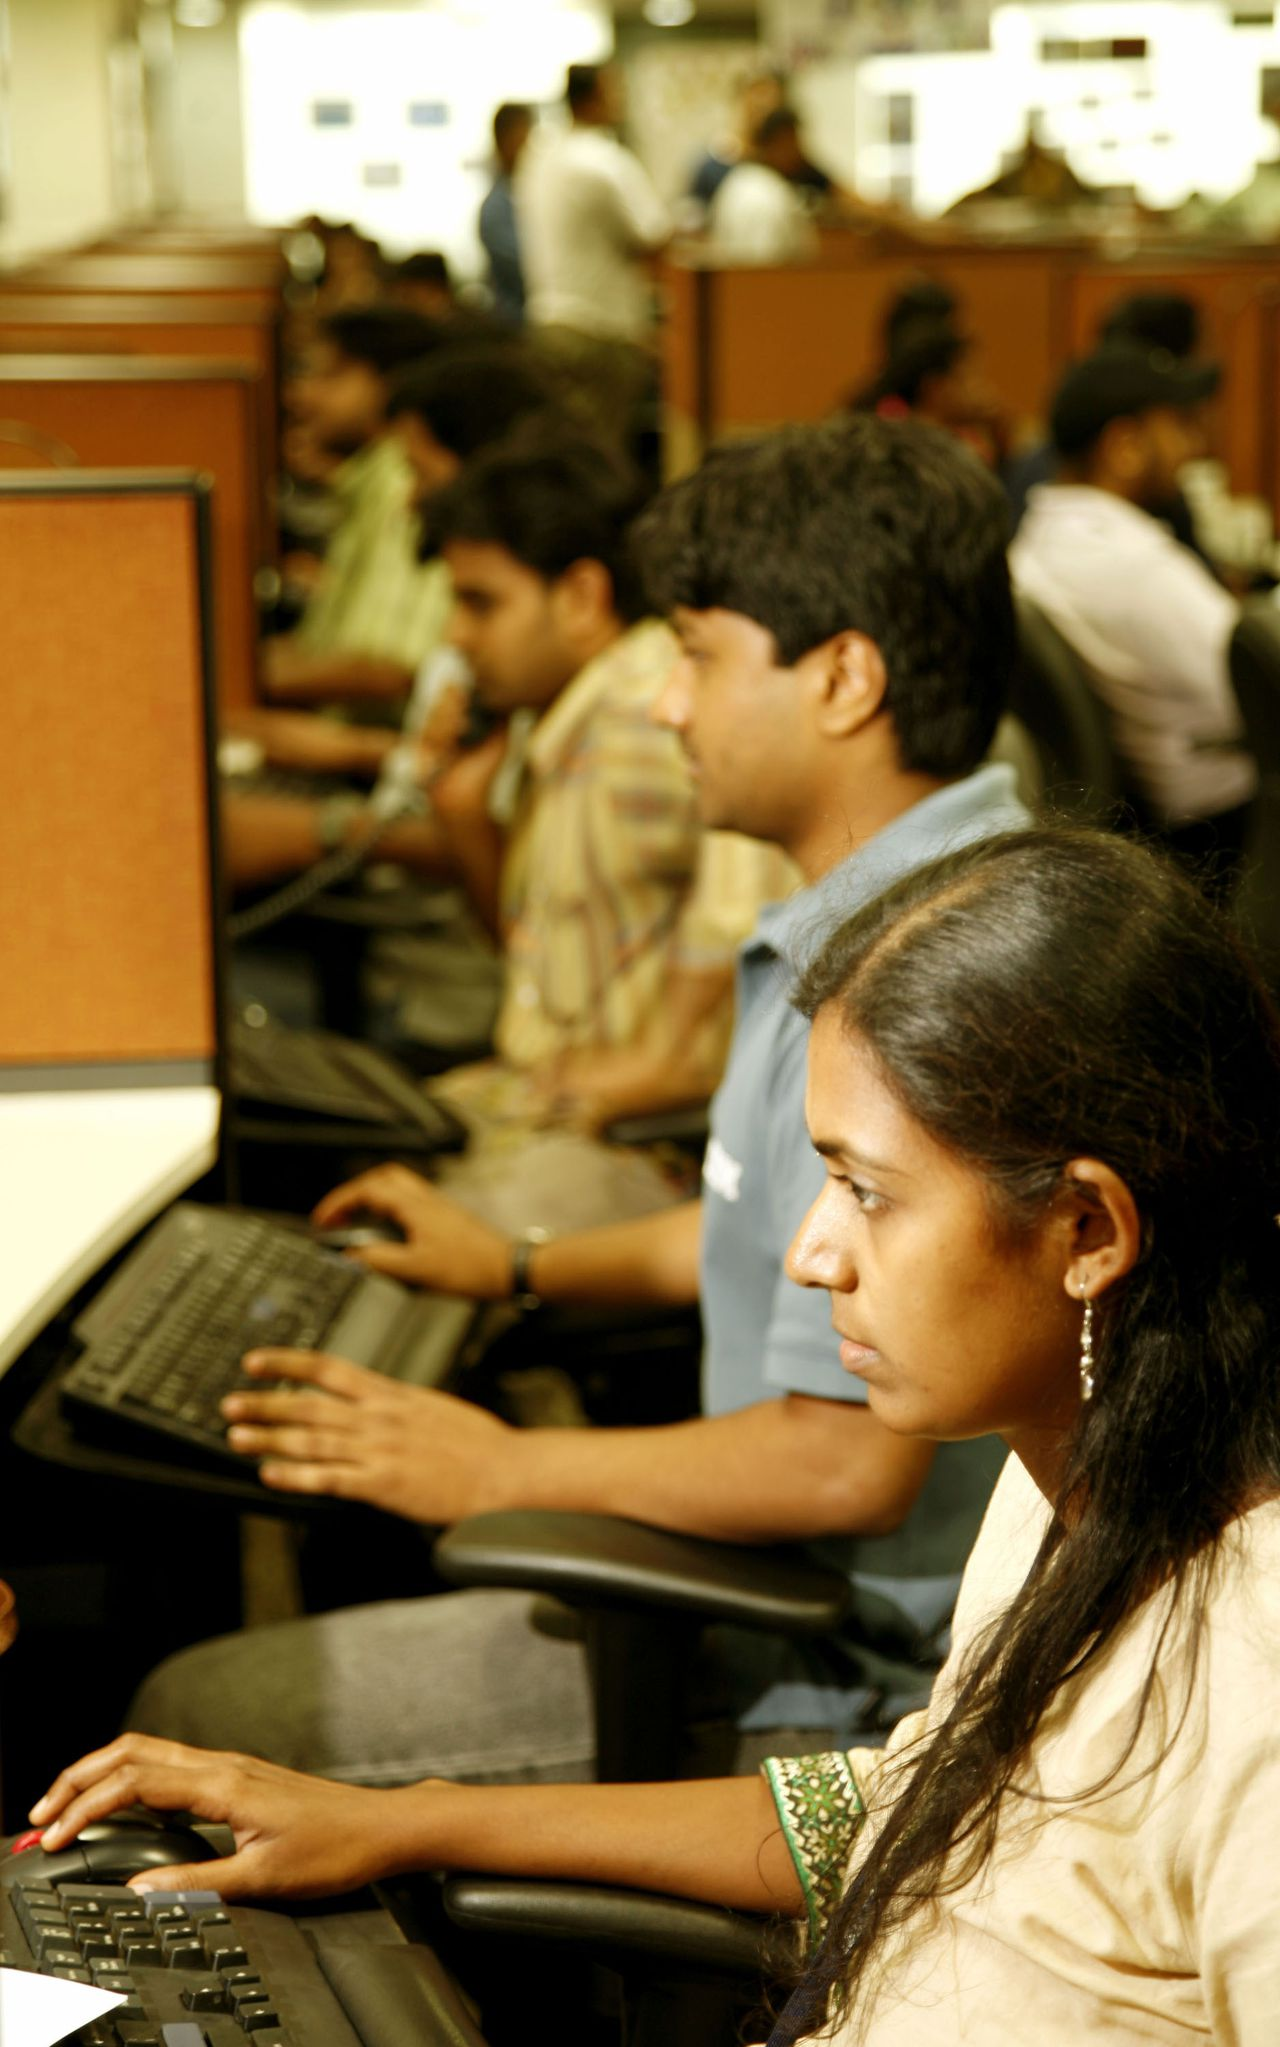 Indiase ICT'ers van IBM. Het Amerikaanse bedrijf is de grootste buitenlandse werkgever van India. Foto Bloomberg Employees work on their ocmputer terminals at IBM in Bangalore, India on Friday, May 19, 2006. IBM, already India's largest foreign employer with 43,000 workers in the country, plans to invest $6 billion by 2009 as the world's largest computer-services company expands operations further. Photographer: Namas Bhojani/Bloomberg News